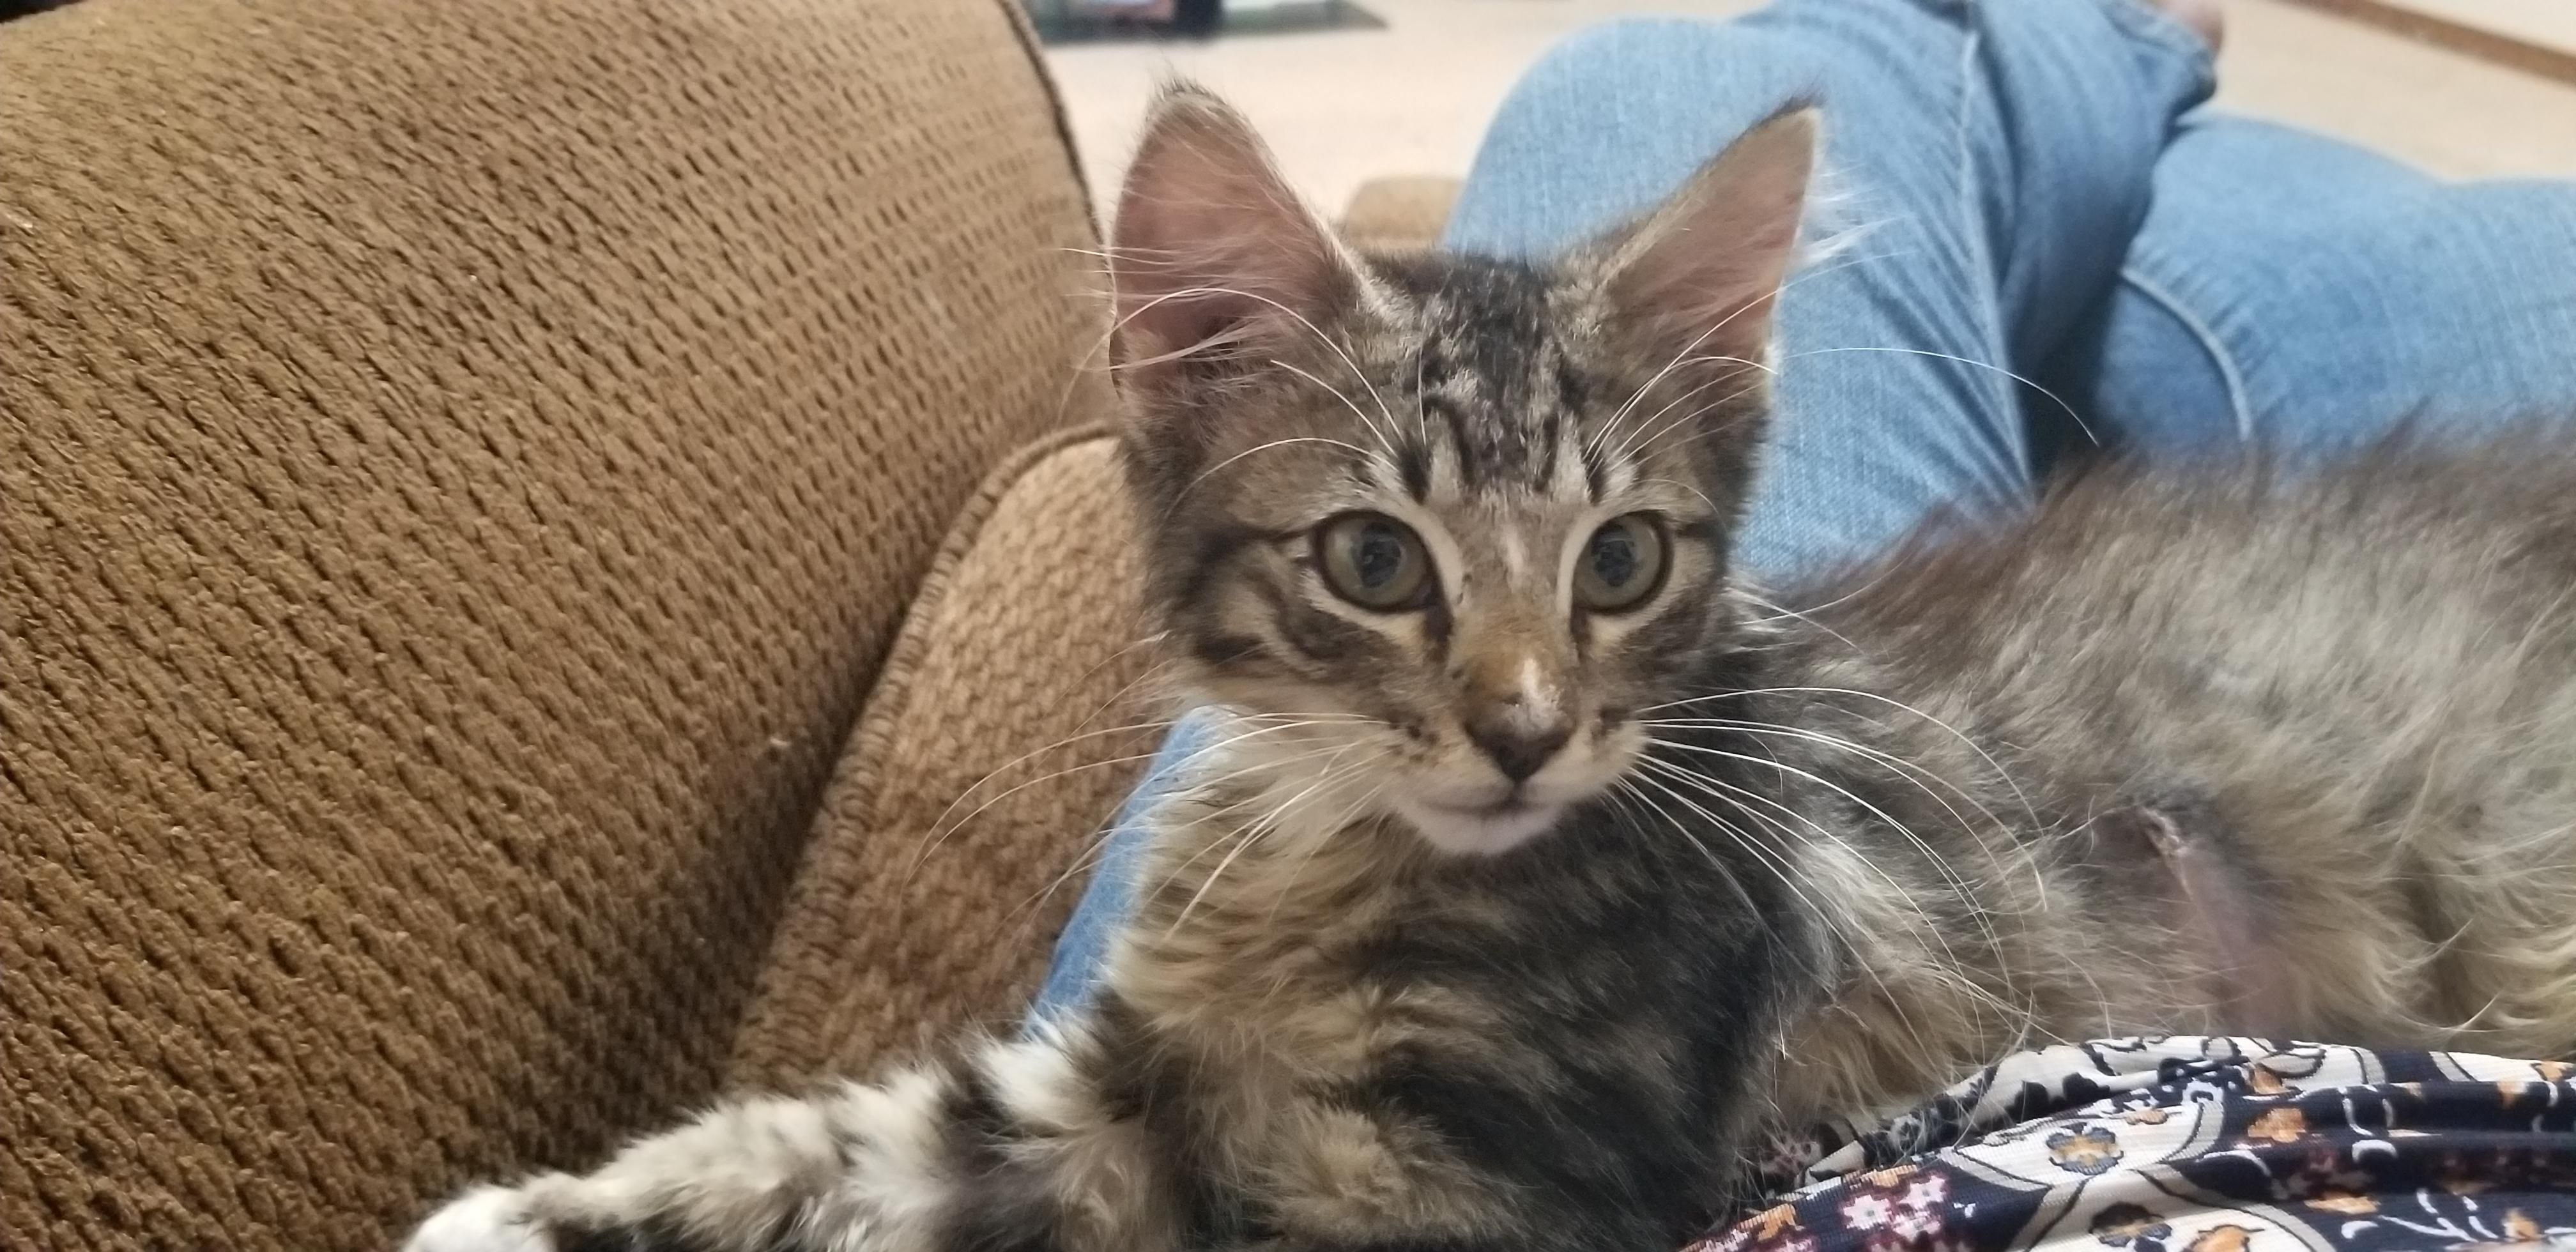 After Two Weeks Of Earning This Feral Kitten S Trust My Patience Finally Paid Off Reddit Meet Asherhttps I Redd It Fxef7z Feral Kittens Cute Animals Kittens